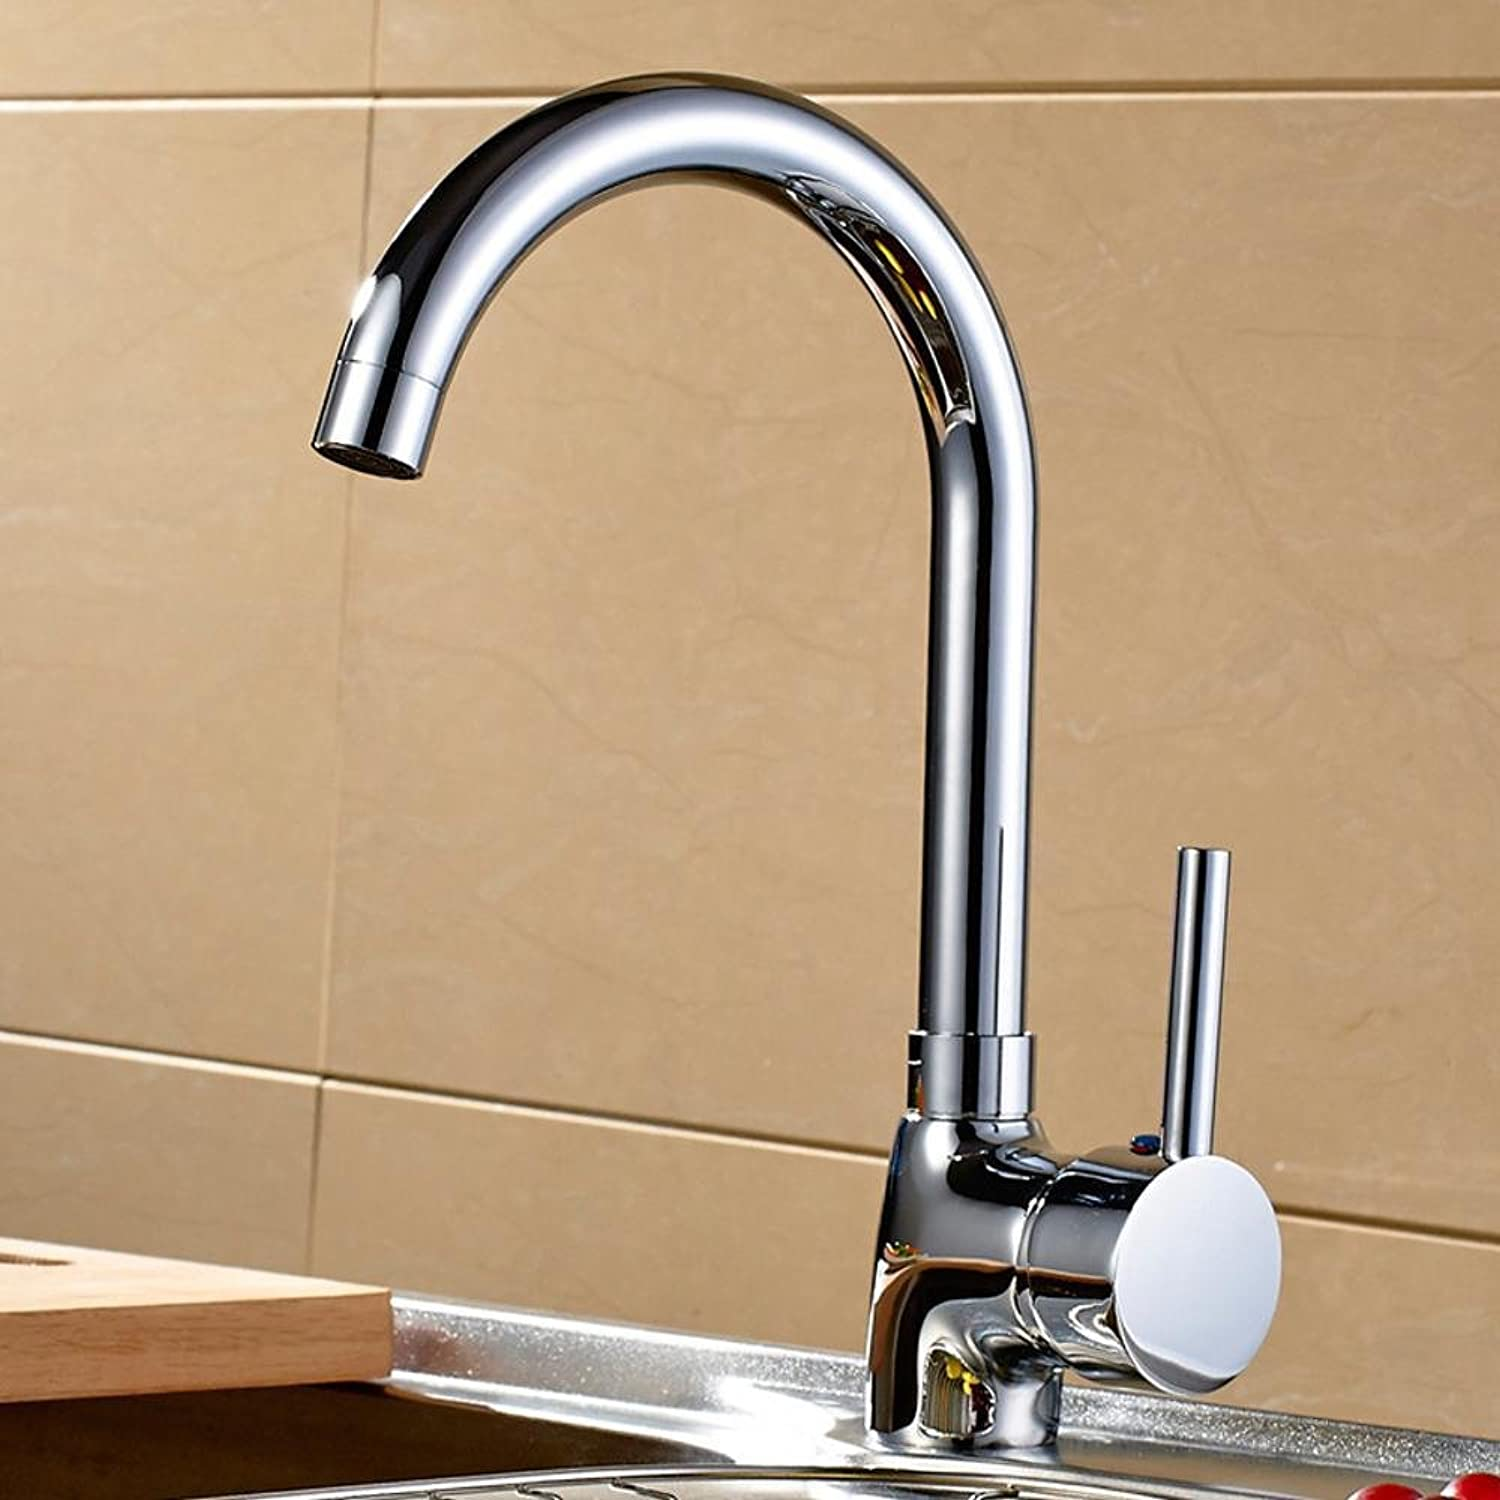 Wmshpeds Copper hot and cold water tap faucet Single-hole kitchen faucet hot and cold sink faucet